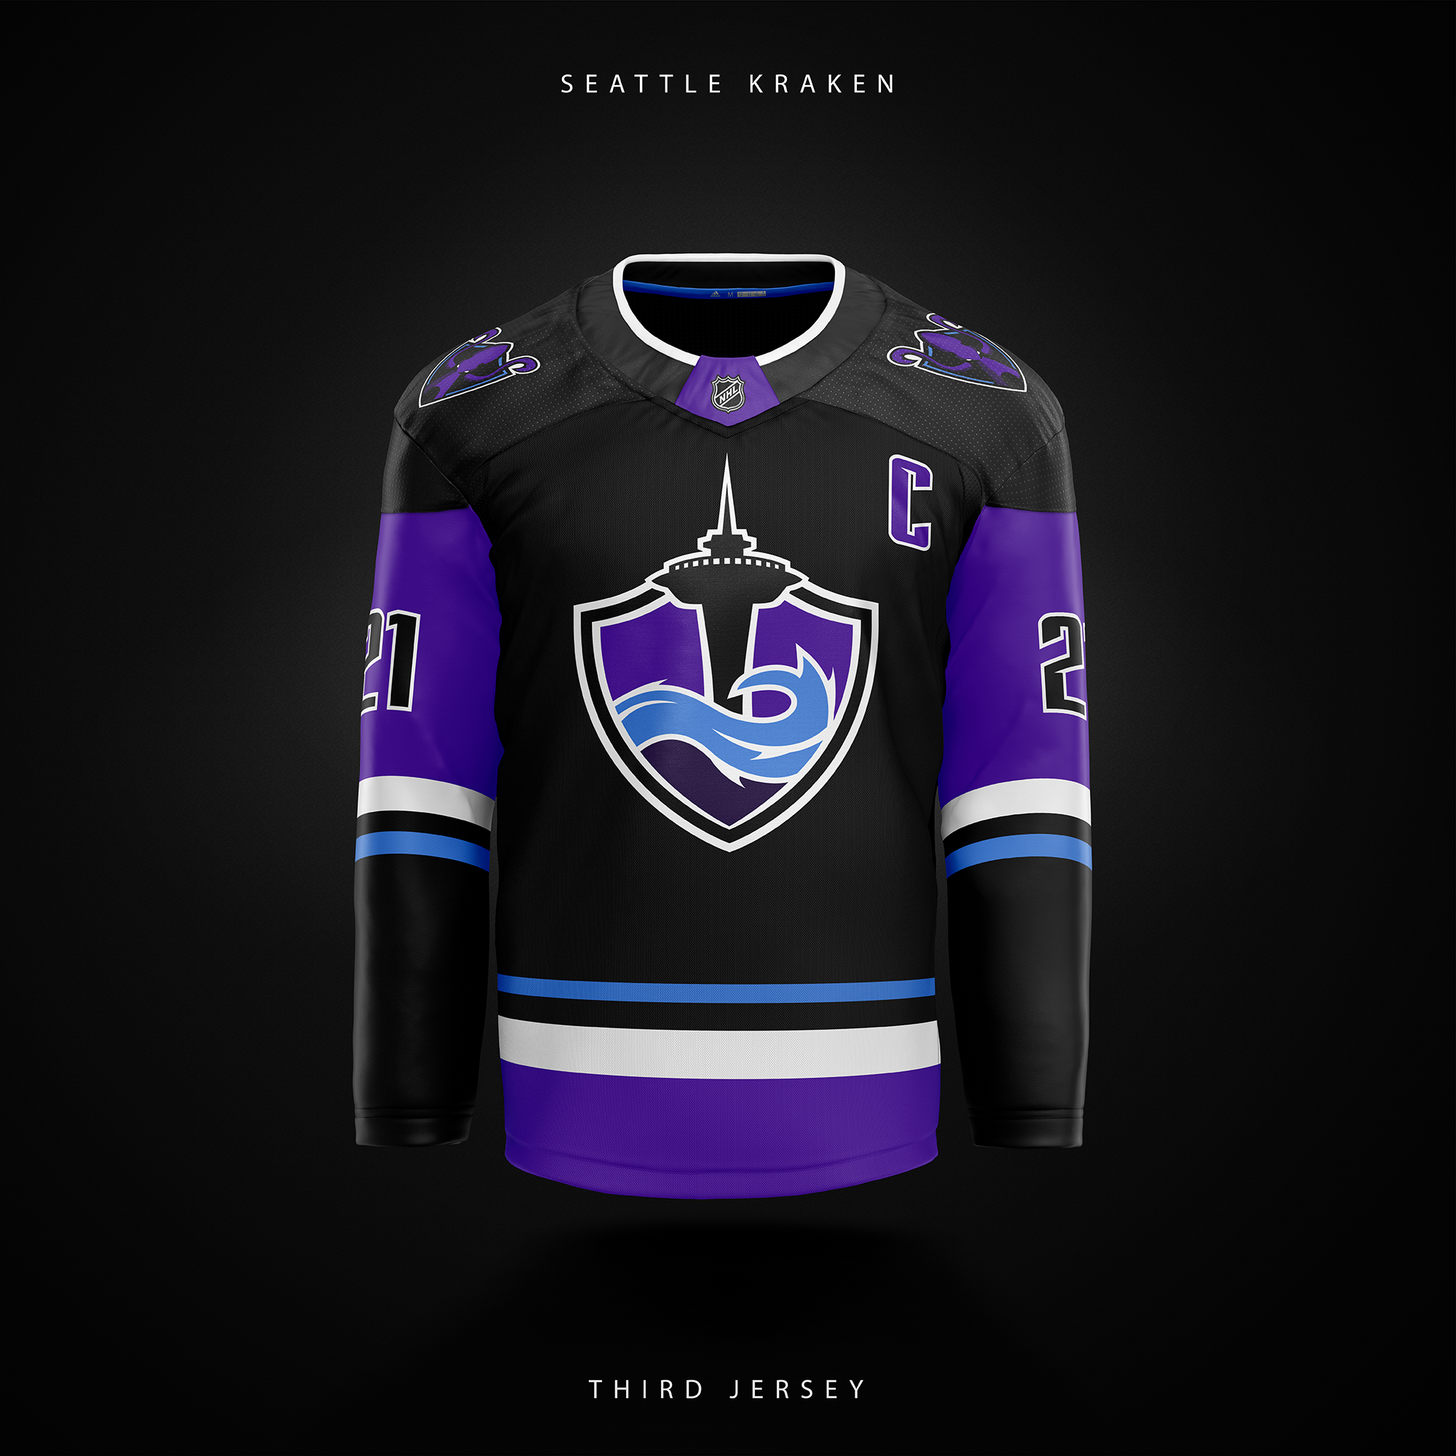 Love this mock-up for the Seattle Krakens!